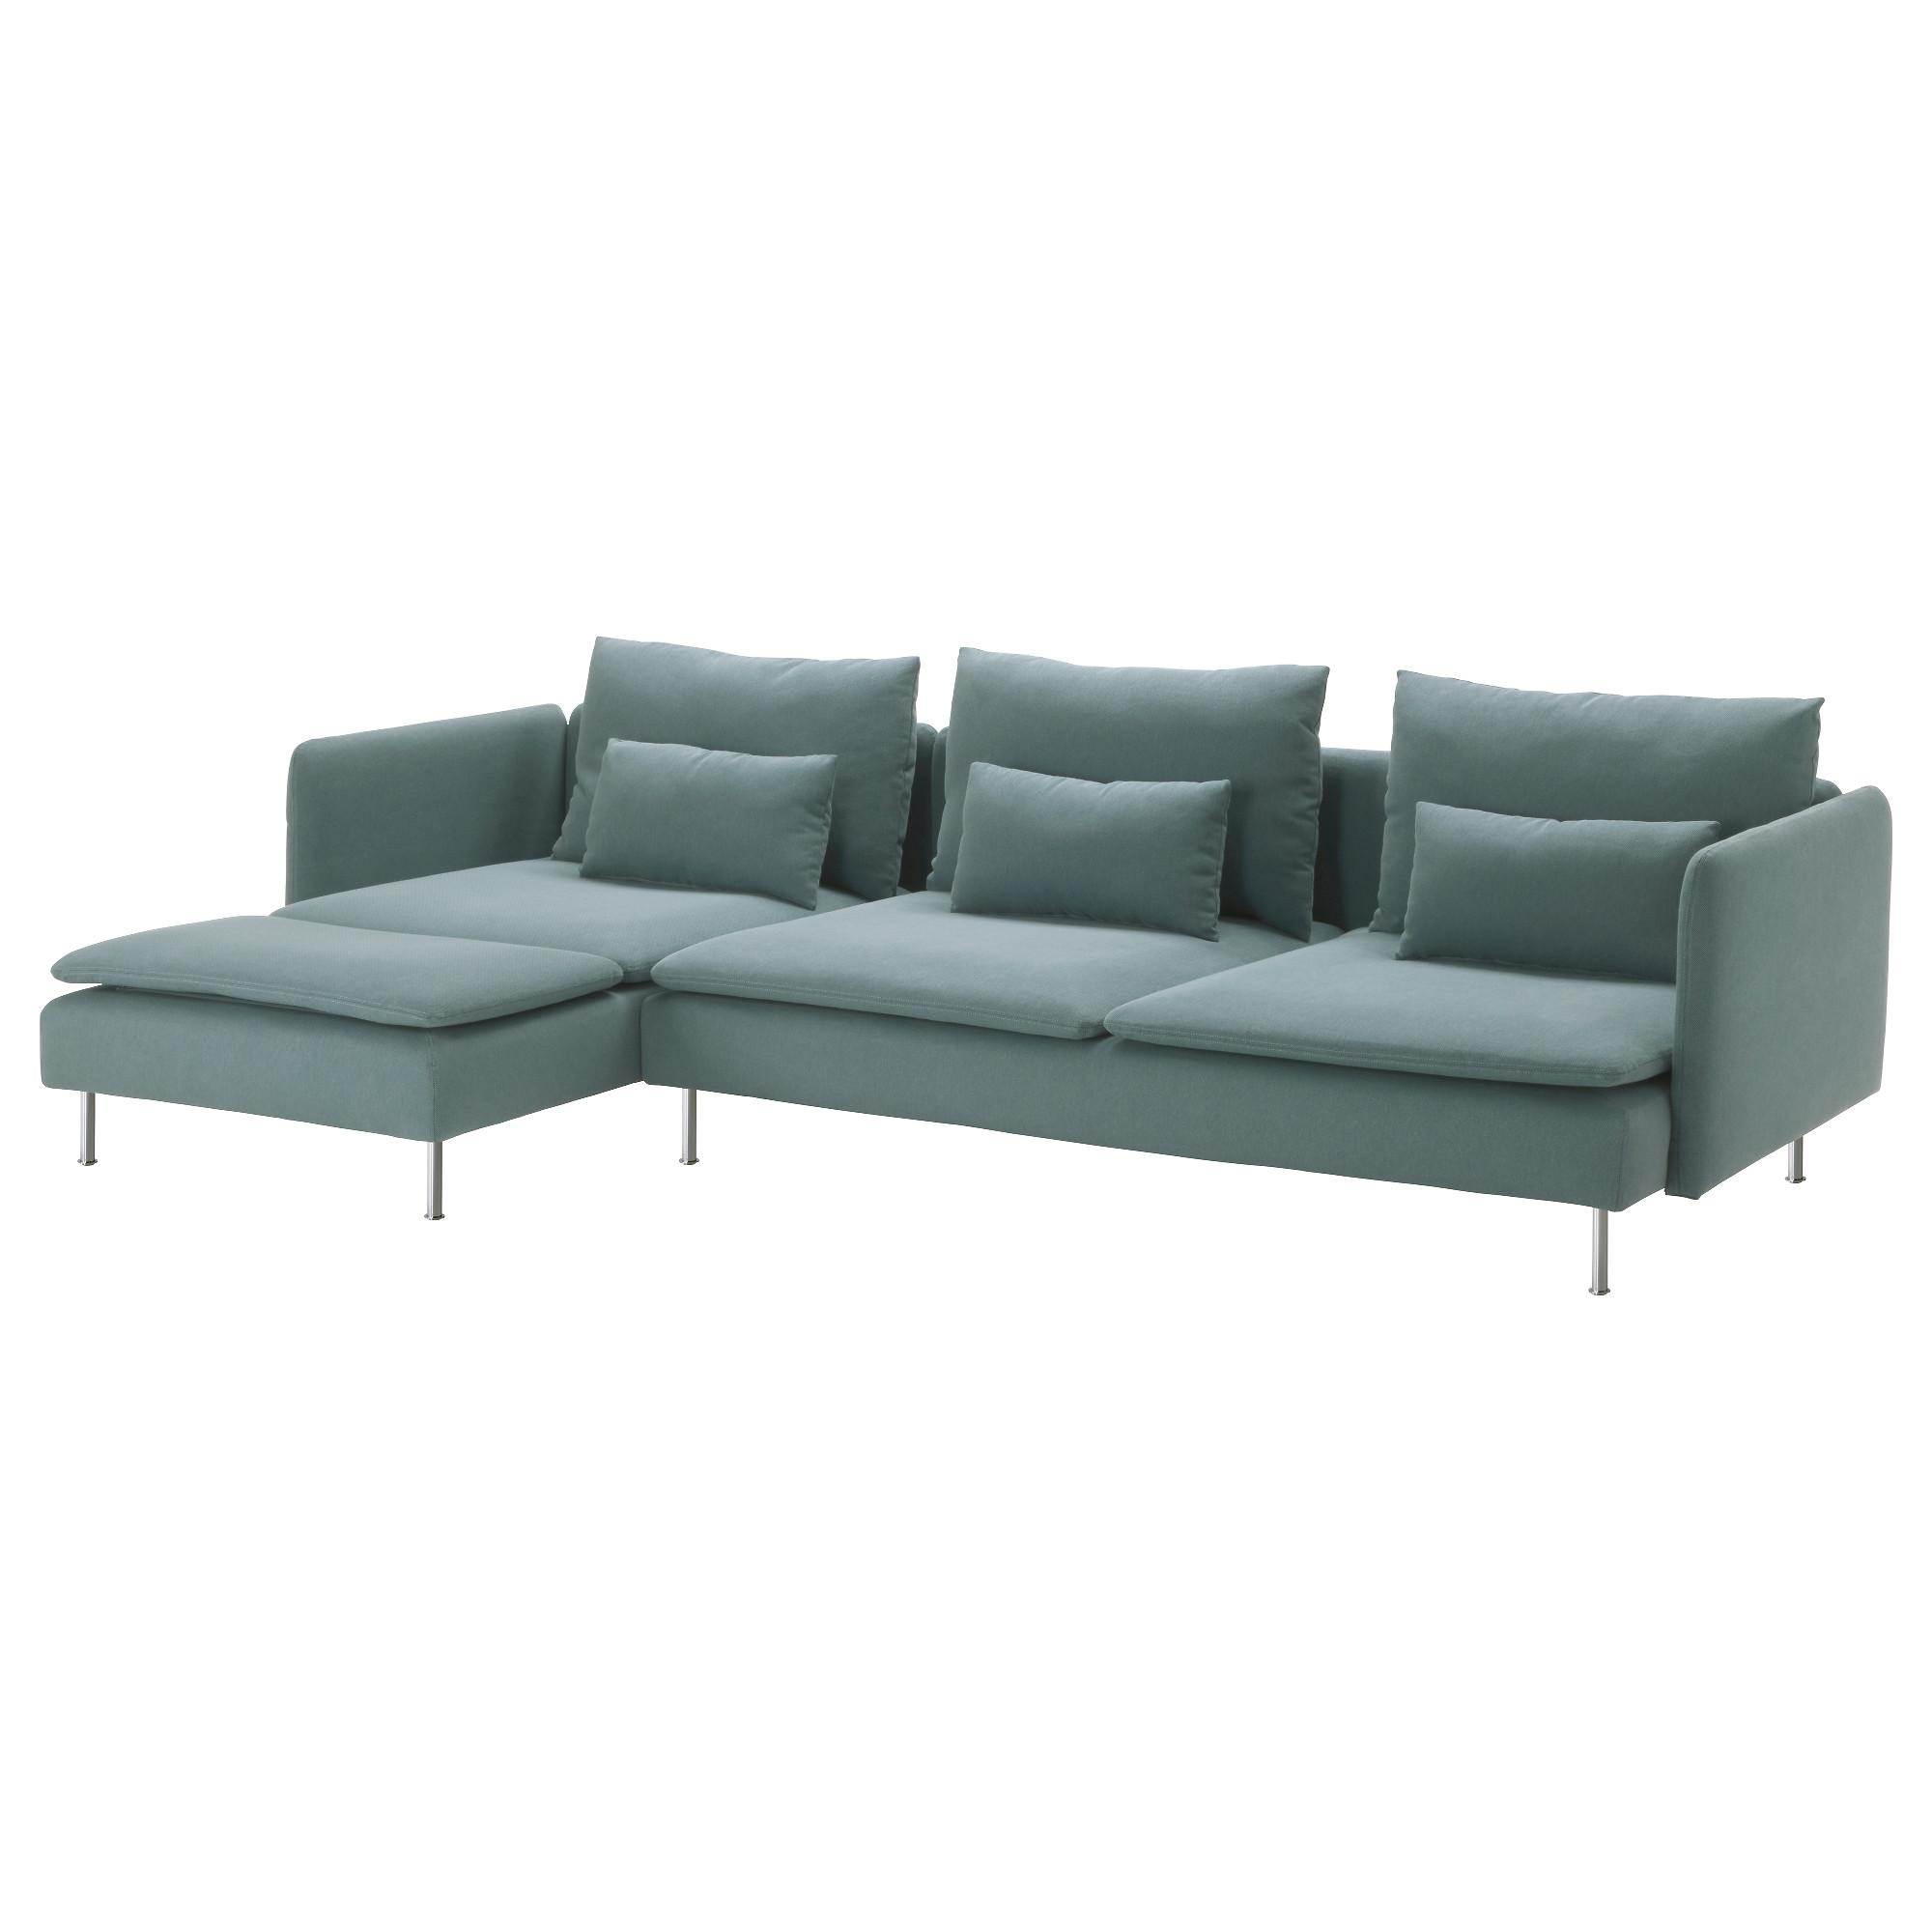 Sectional Sofas & Couches – Ikea Pertaining To Sectinal Sofas (View 16 of 20)